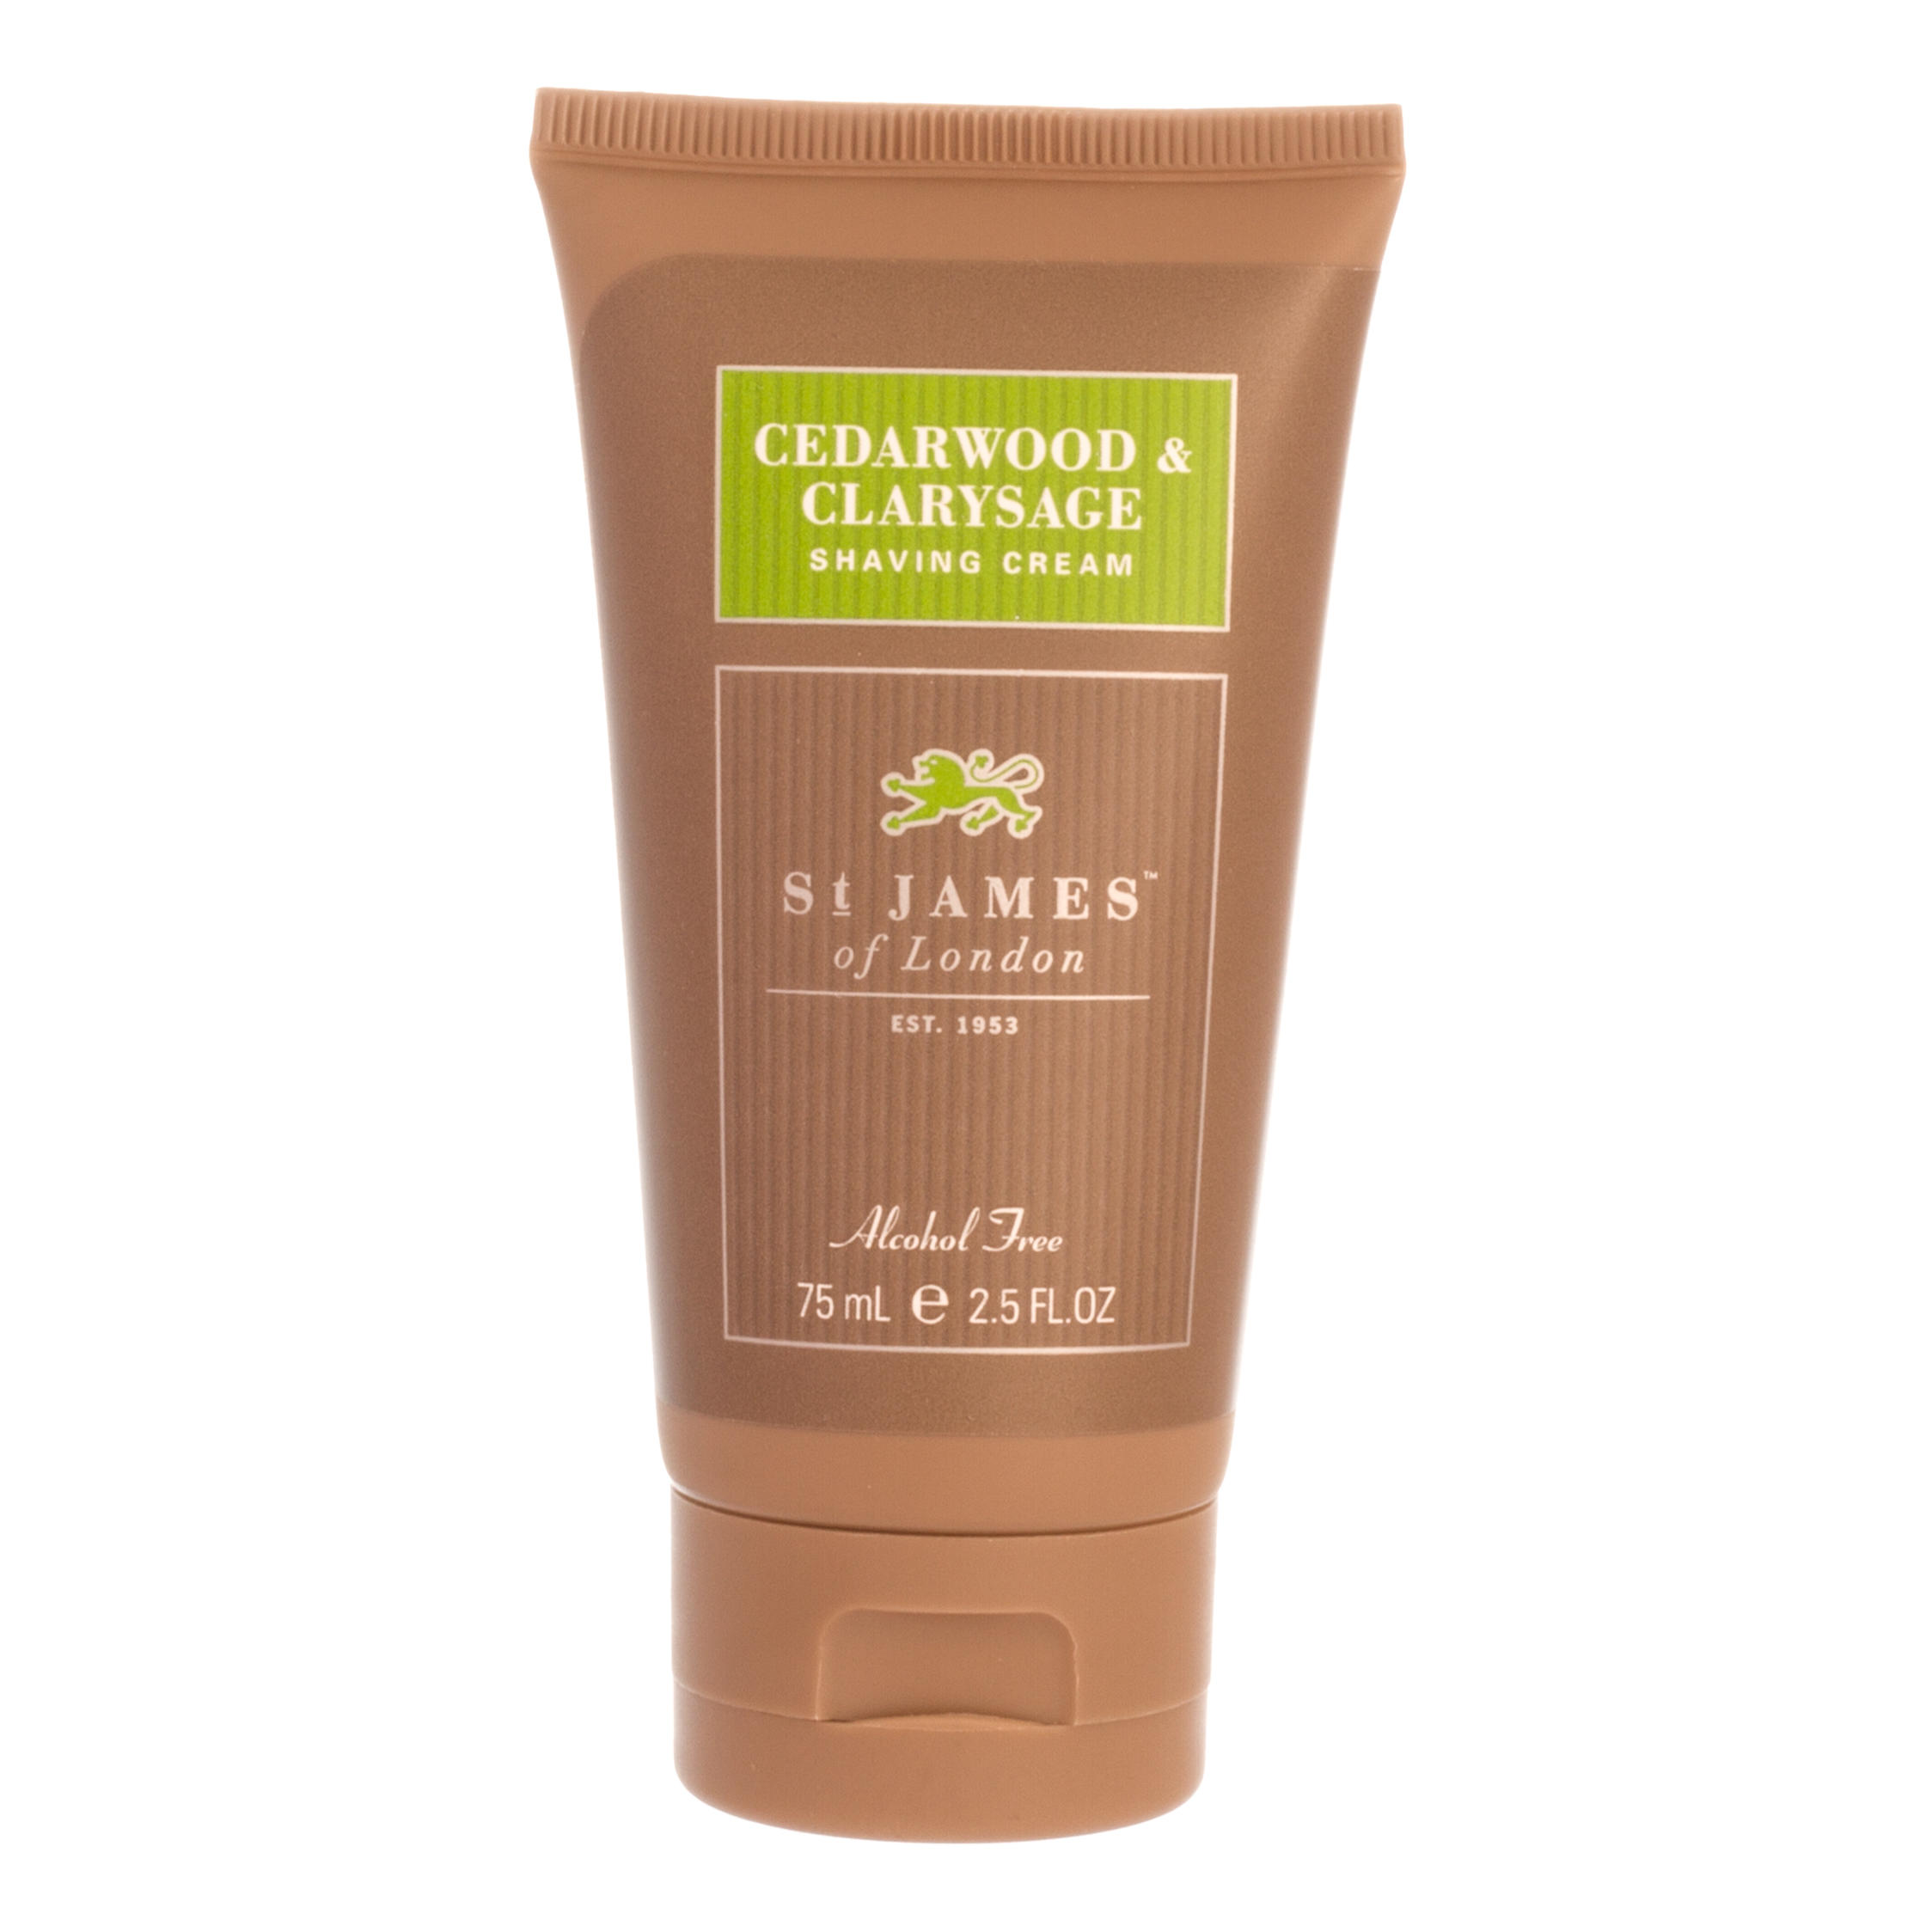 St James of London Cedarwood & Clarysage Shaving Cream Tube